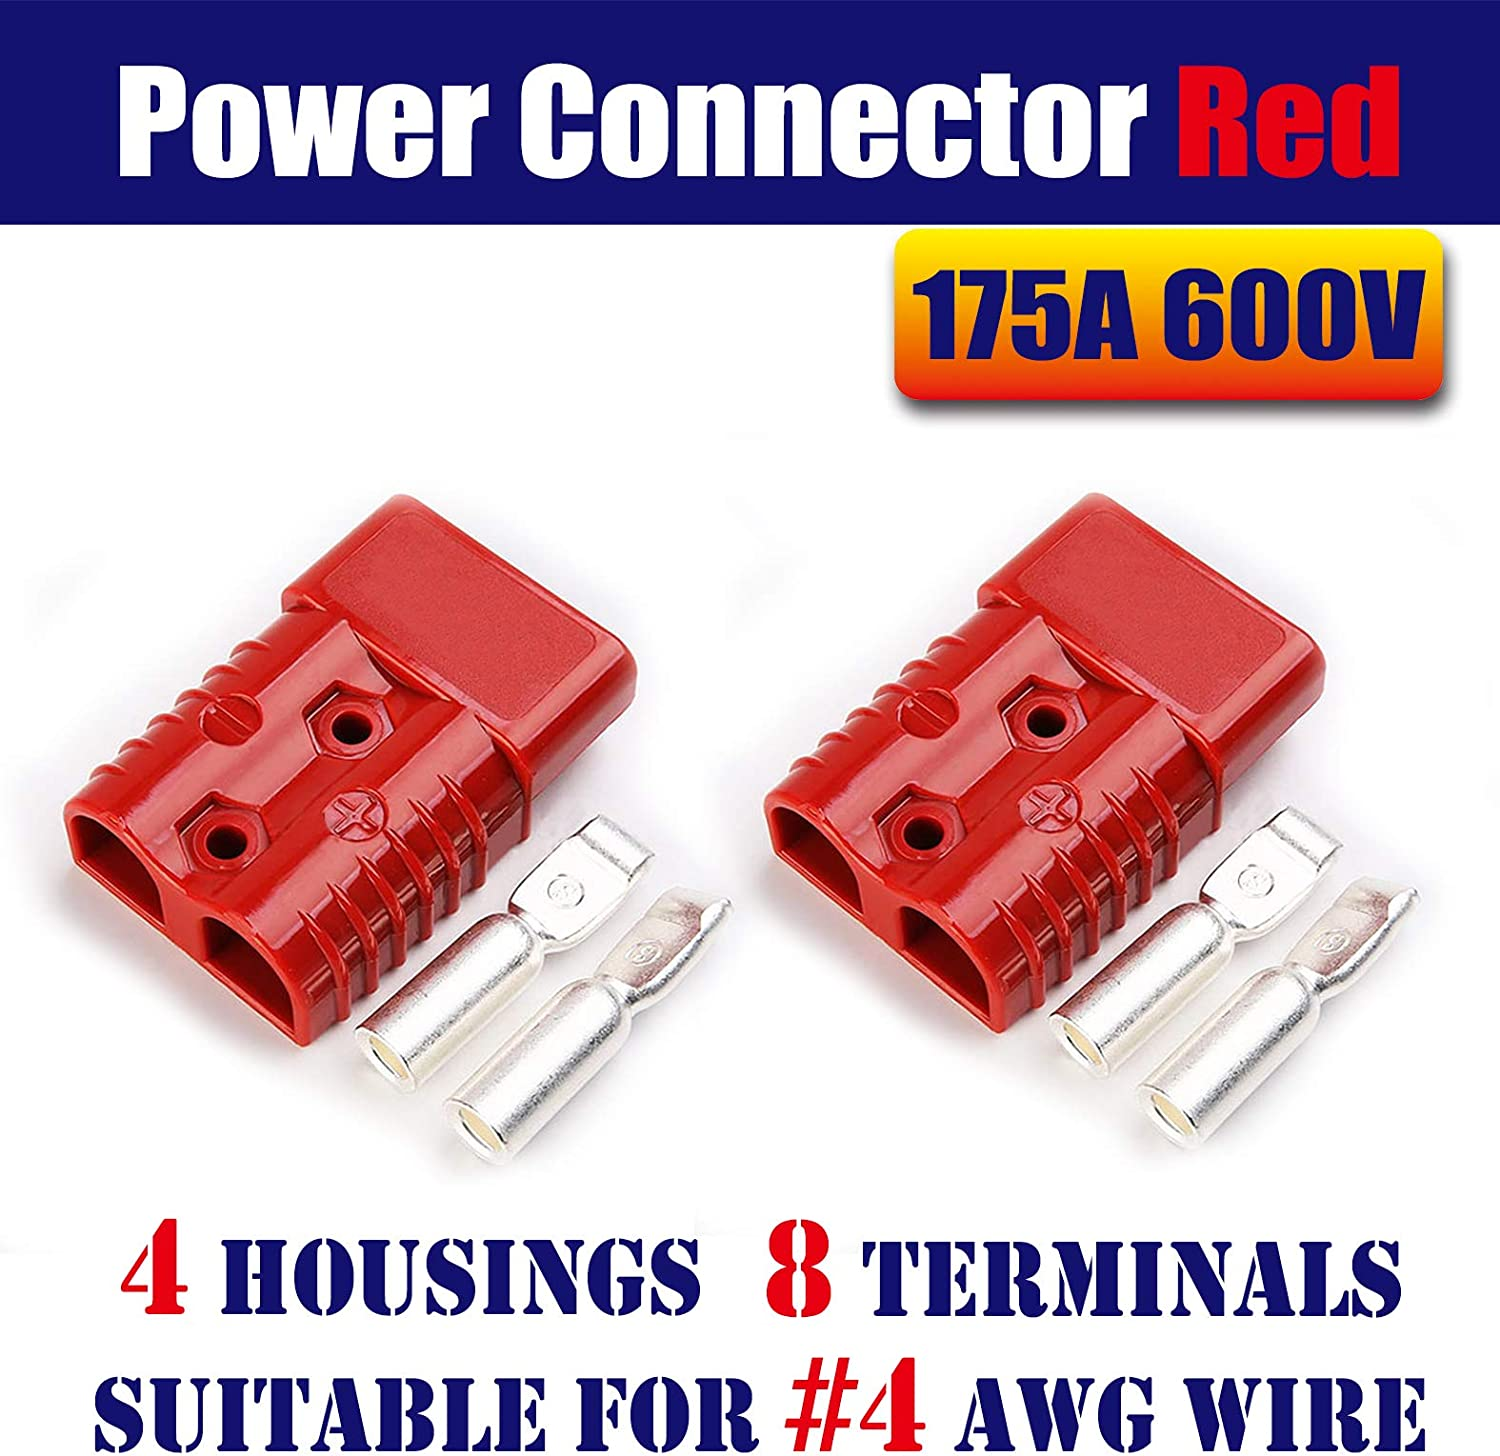 4 housing+8 Terminal pins Mr.Brighton LED 175Amp Anderson Compatible 2 Pole Power Connector Plug Grey w//Terminals for #2 AWG Wire